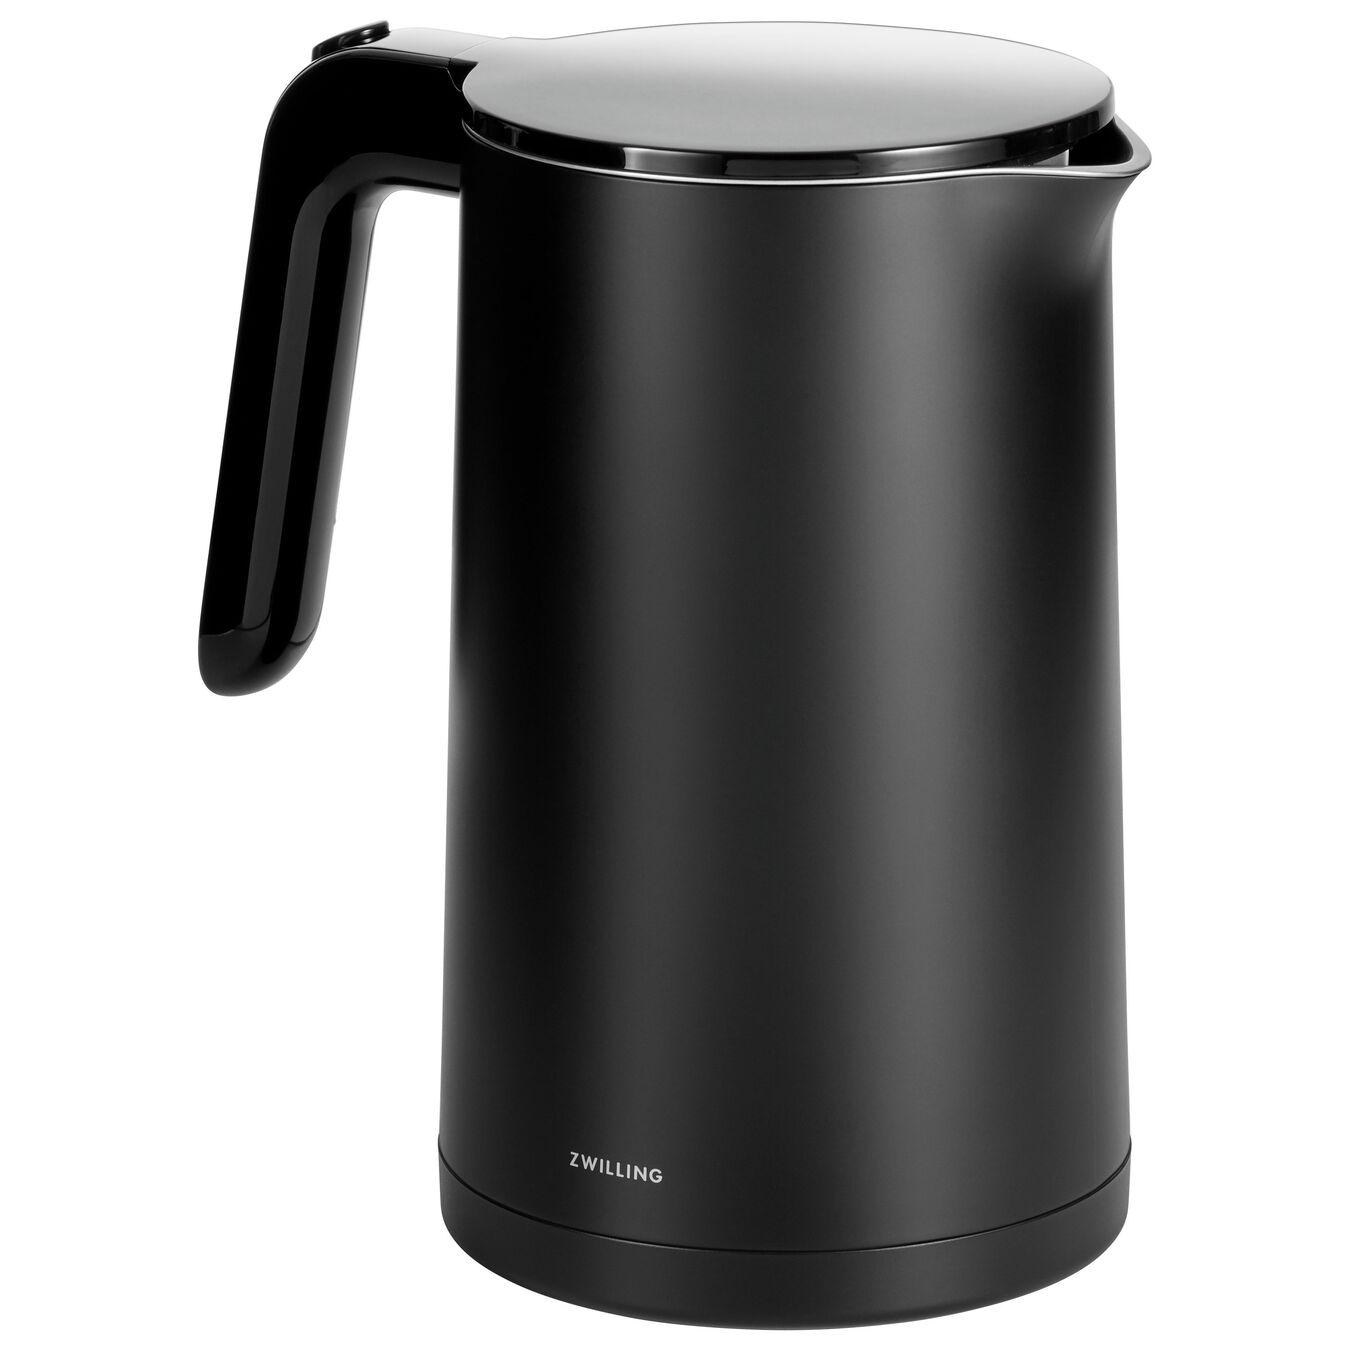 Cool Touch Kettle - Black,,large 1